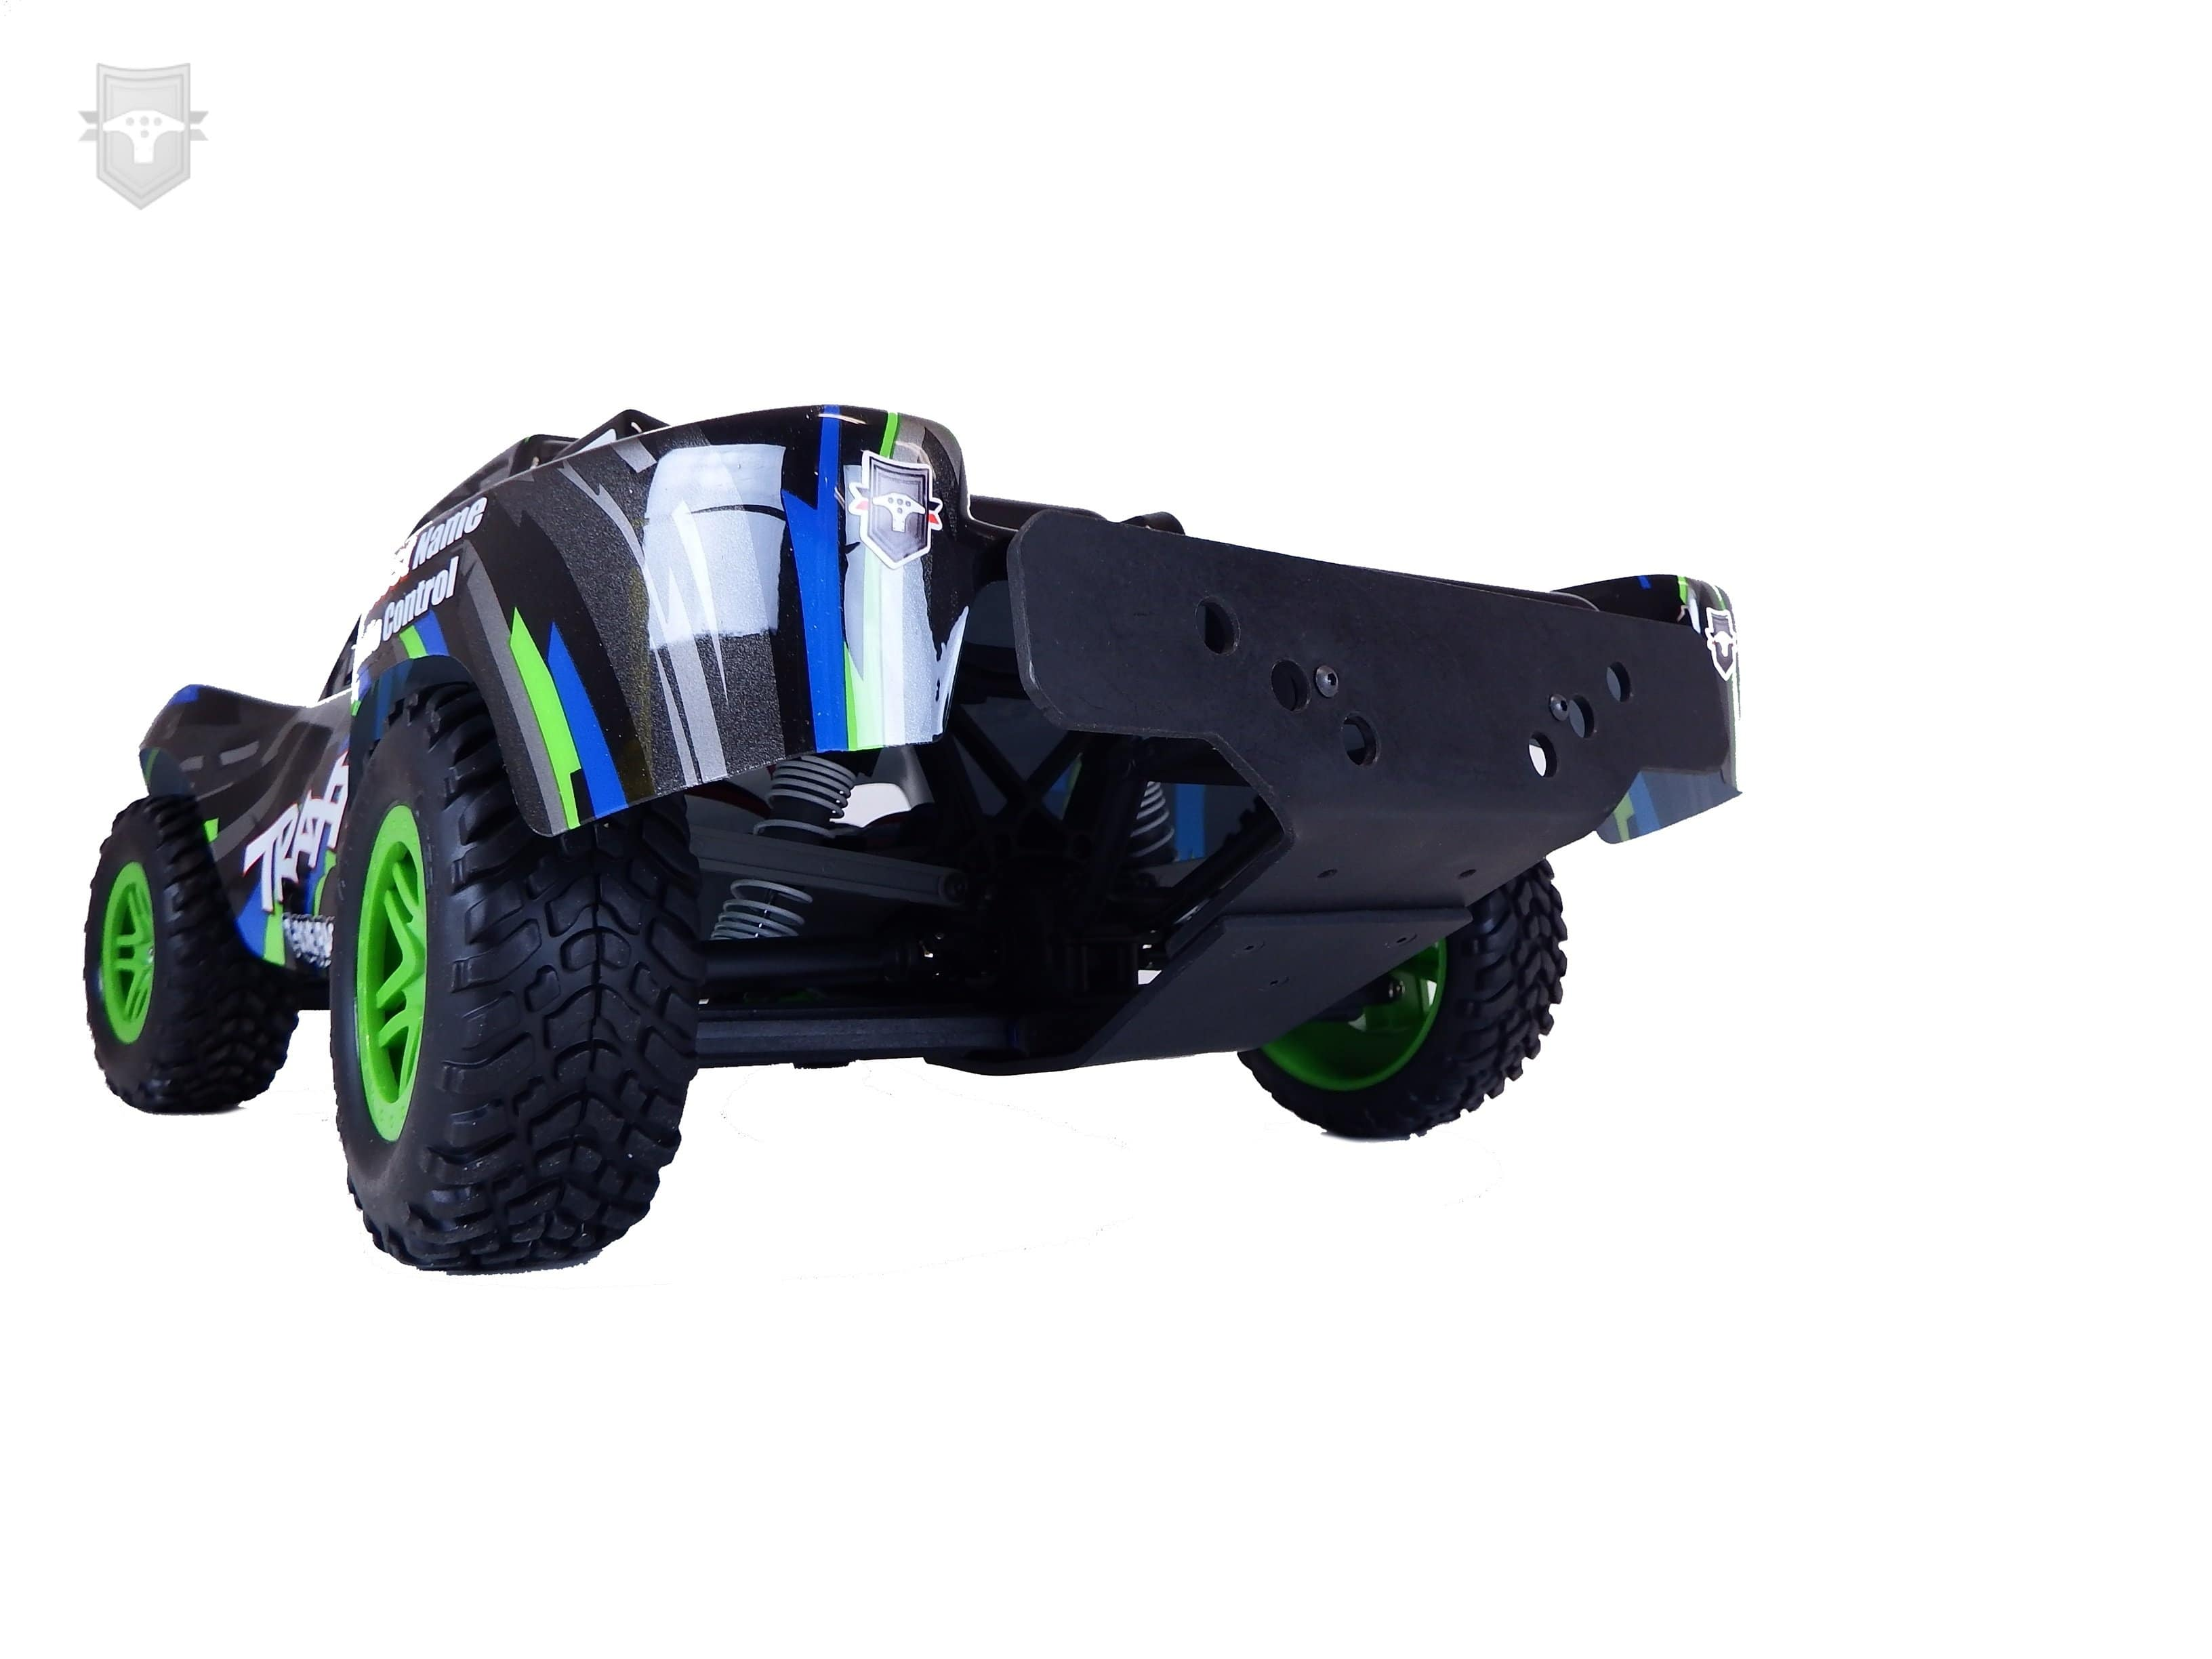 TBR SC Basher V3 Rear Bumper - Traxxas Slash 4x4 - 62070